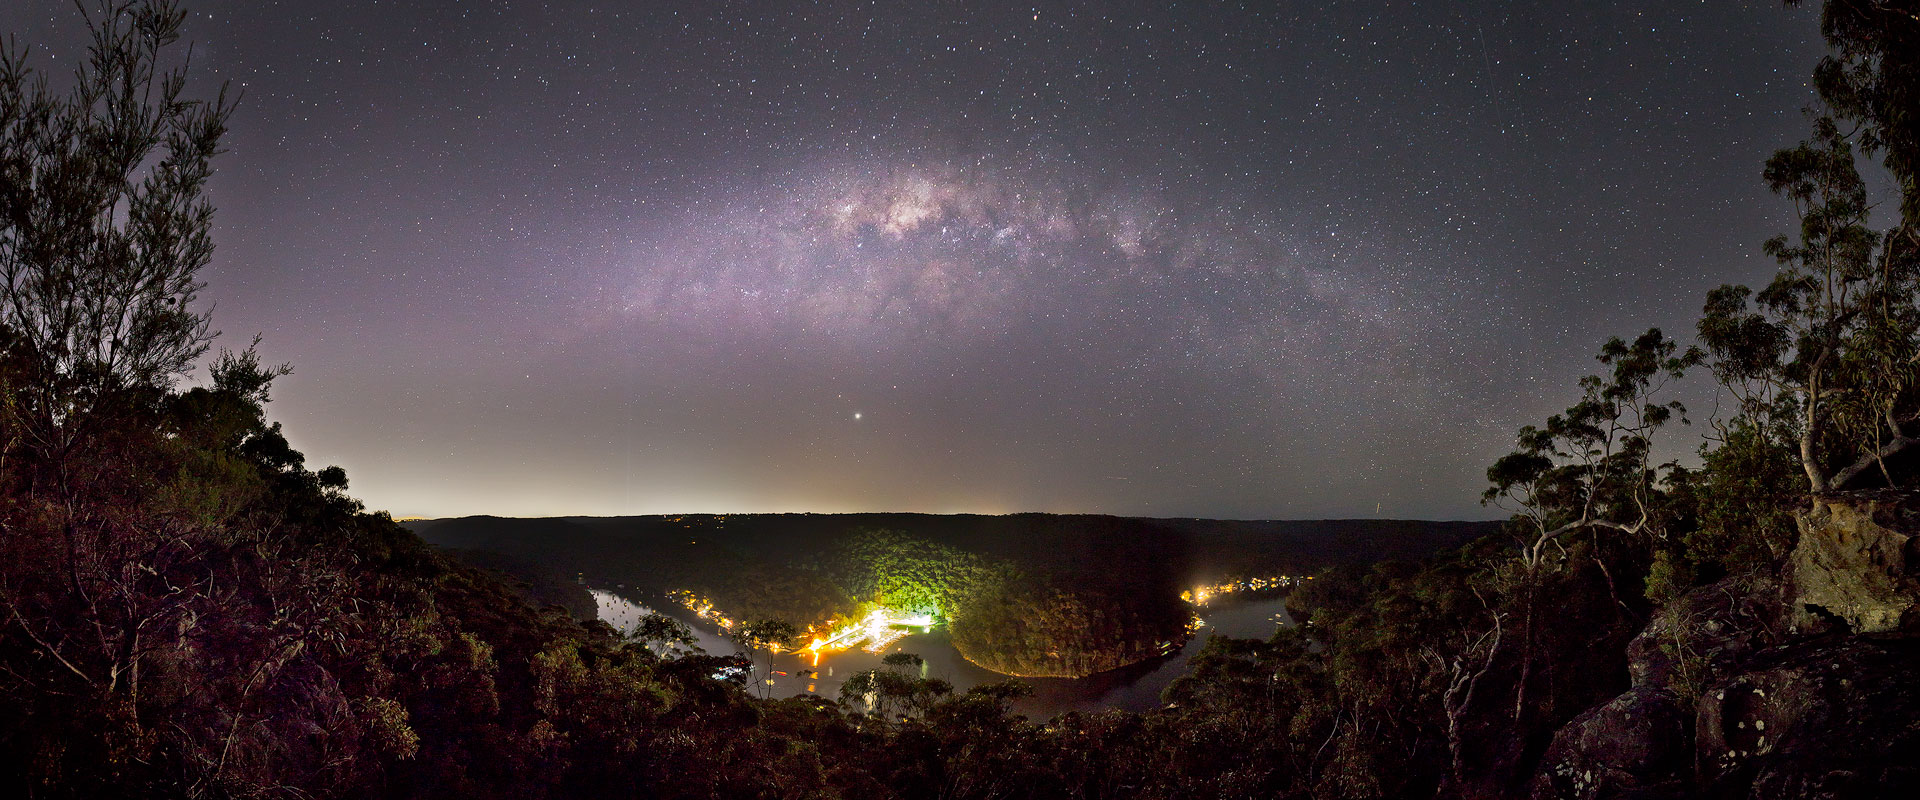 Milky Way, Berowra, Berowra Valley National Park, Berowra Waters, Sunset, Landscape Photography, Landscape Photography Sydney